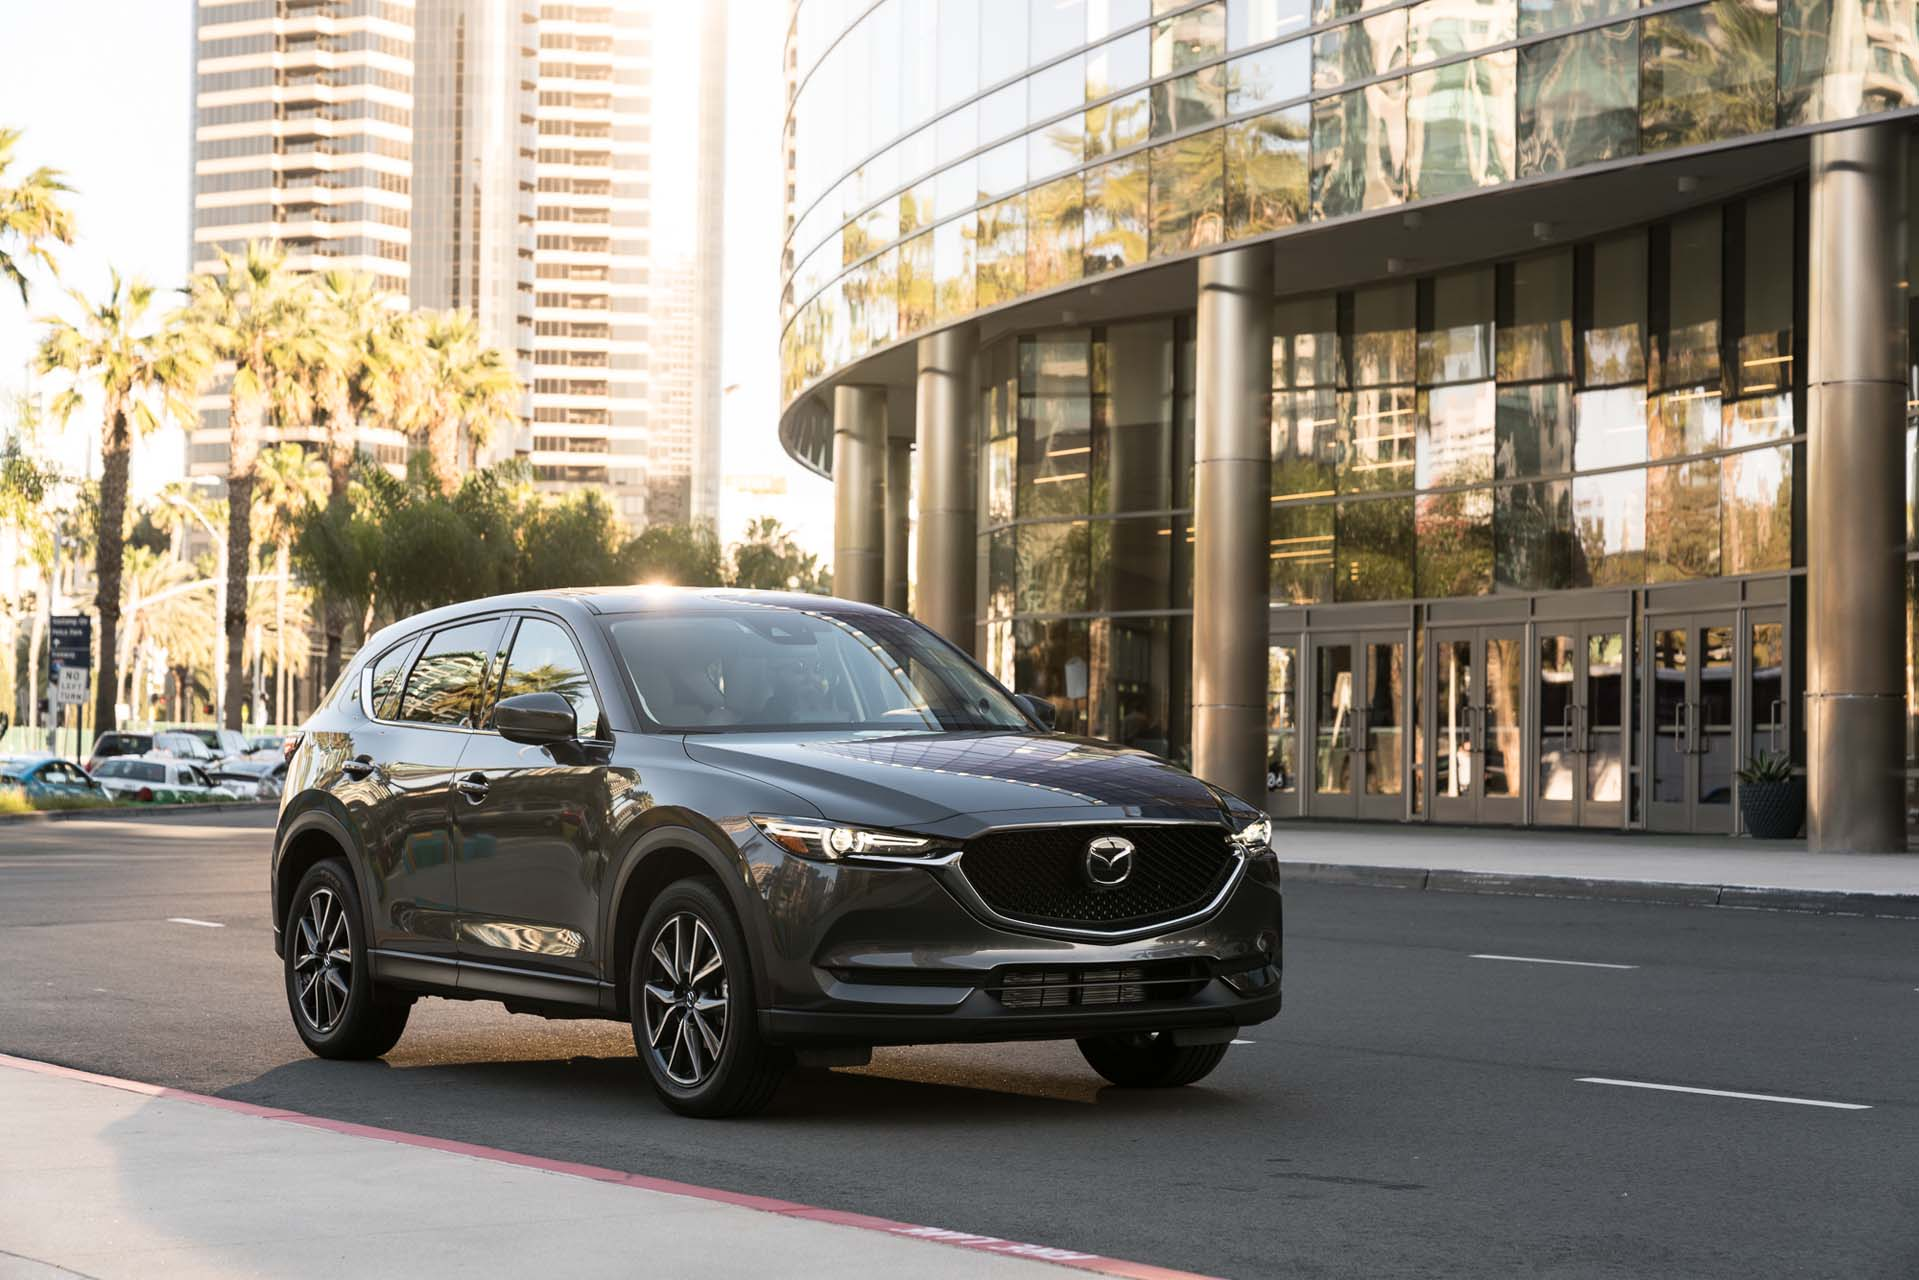 New and Used Mazda CX5 Prices, Photos, Reviews, Specs